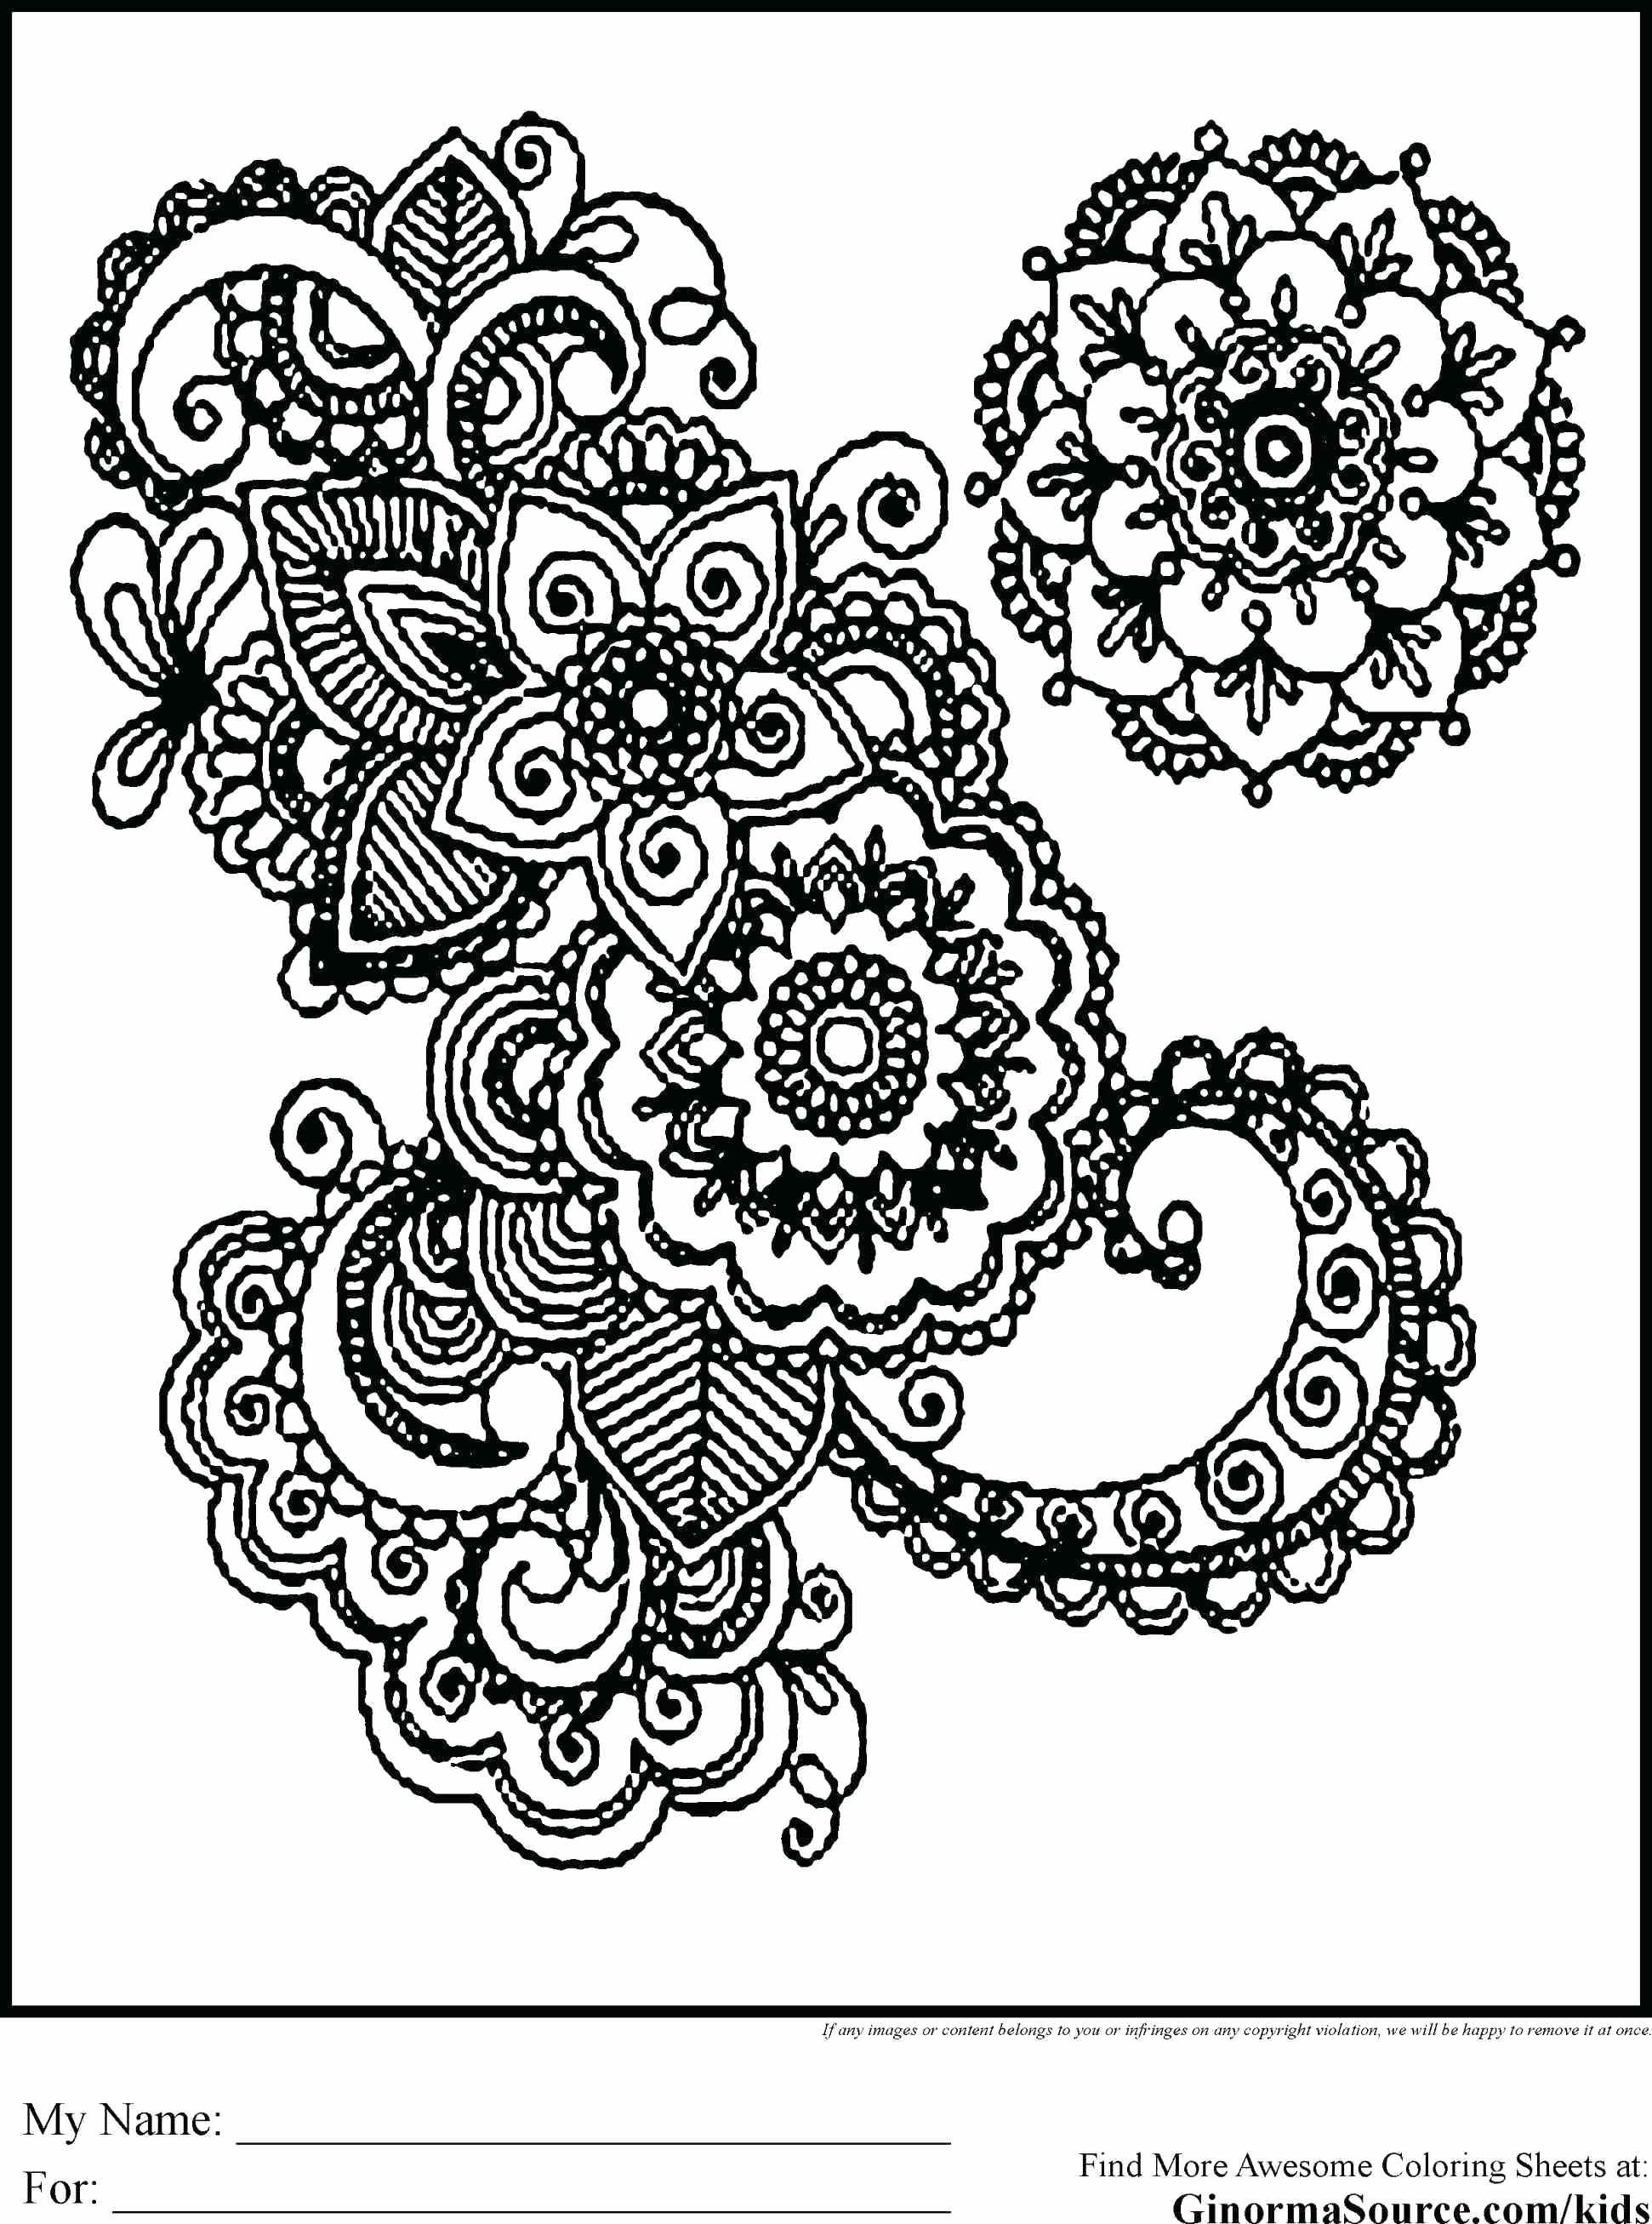 25 Coloring Pages Adults Online Detailed Coloring Pages Abstract Coloring Pages Online Coloring Pages